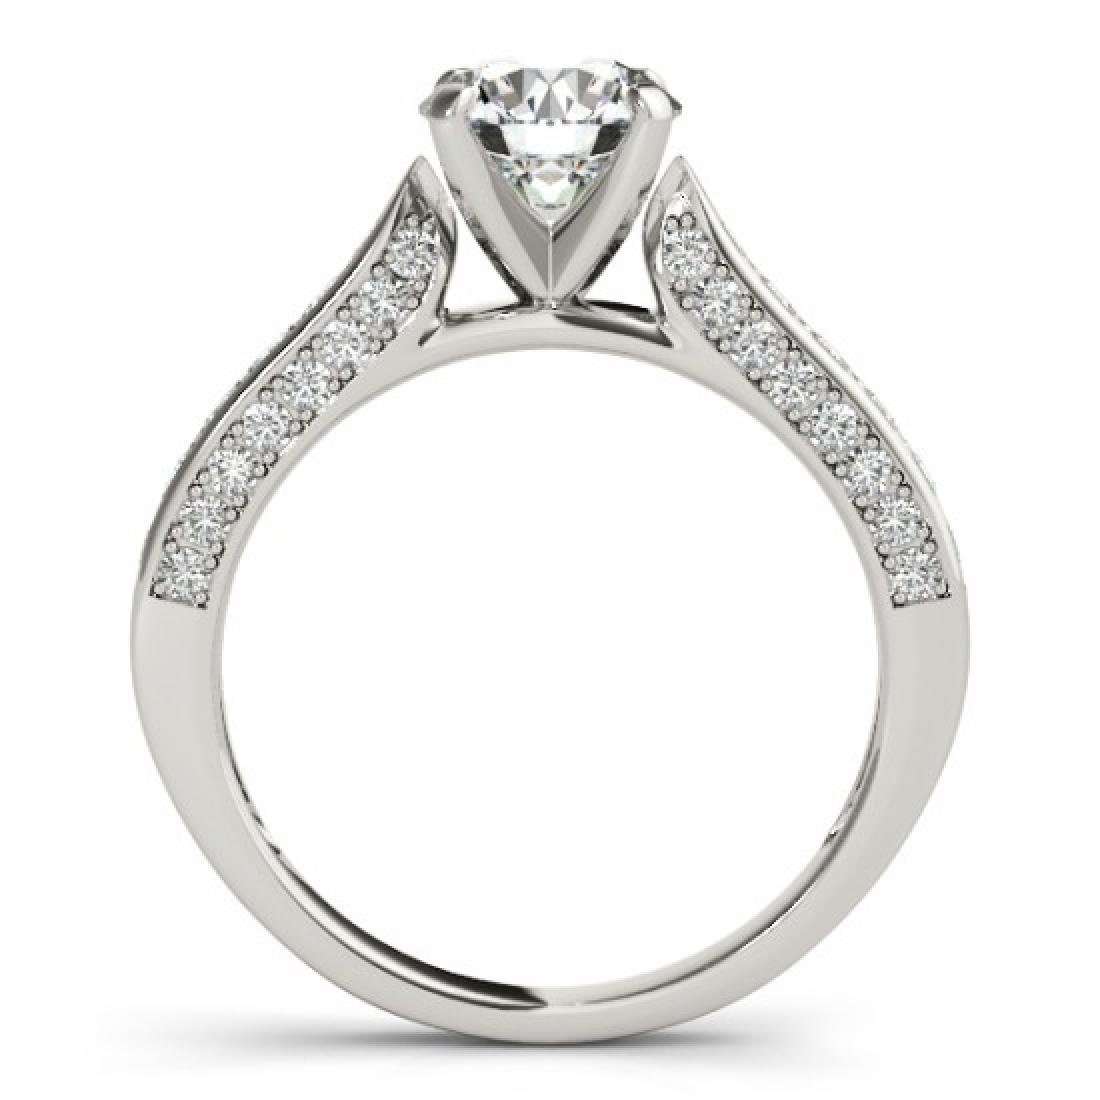 1.1 CTW Certified VS/SI Diamond Solitaire Ring 14K - 2